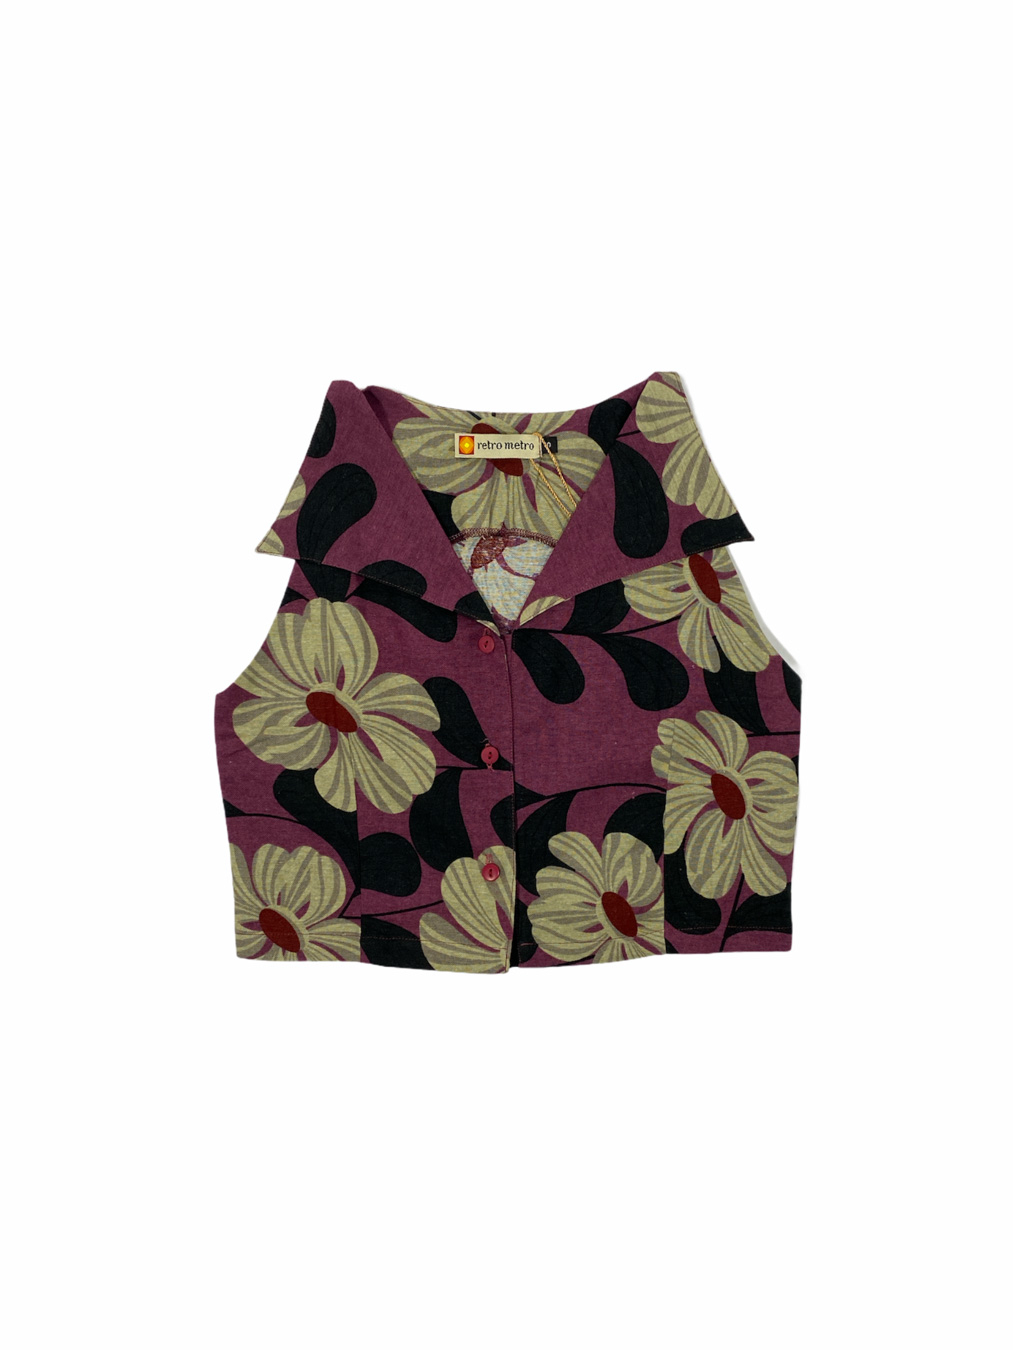 Daphne Top in Purple floral